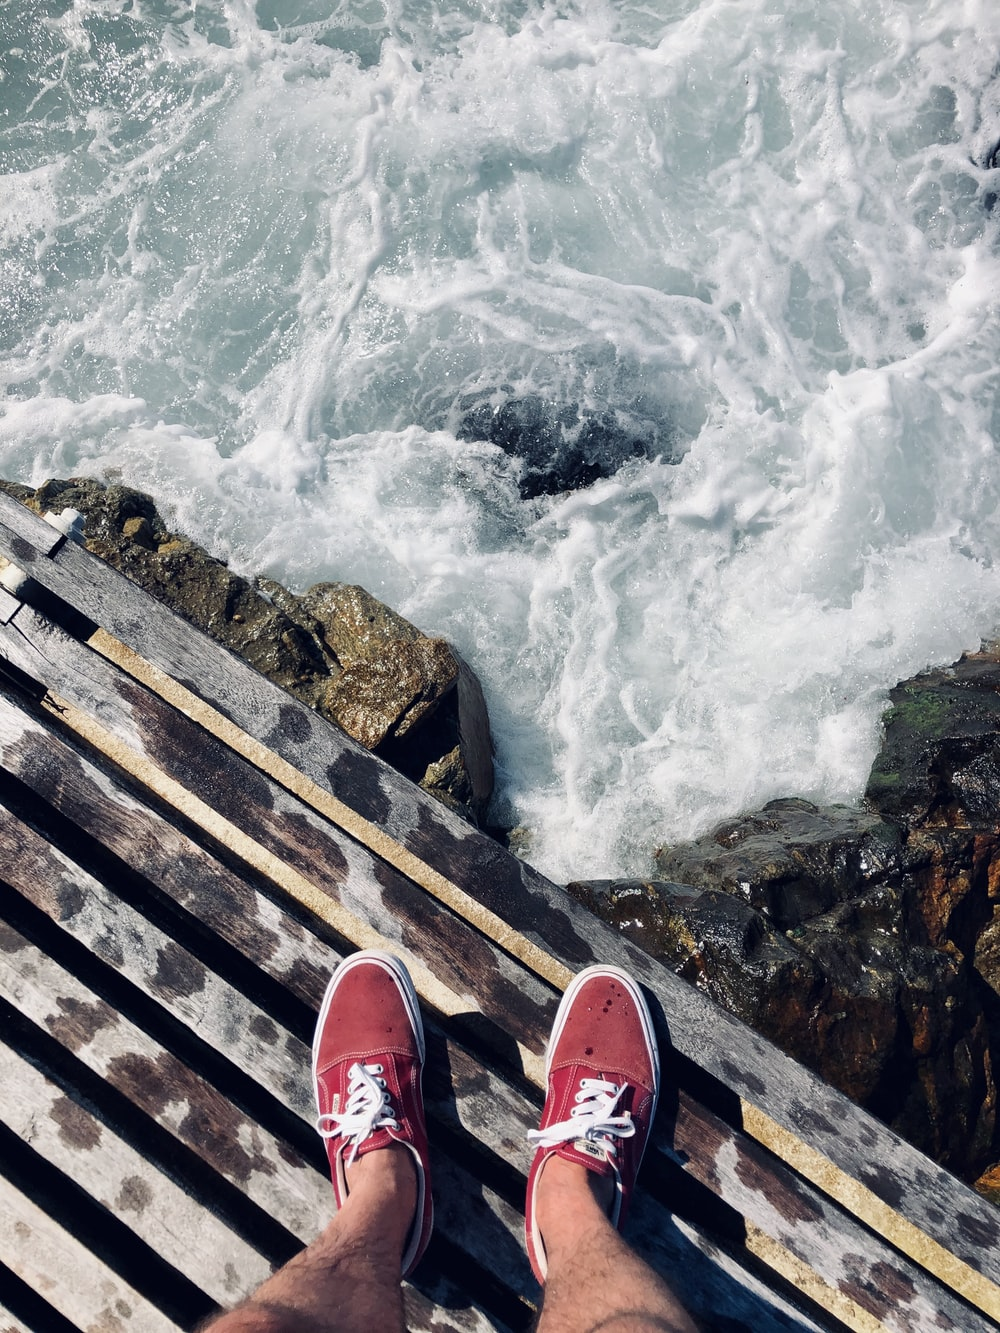 person in red and white sneakers standing on wooden dock over the water